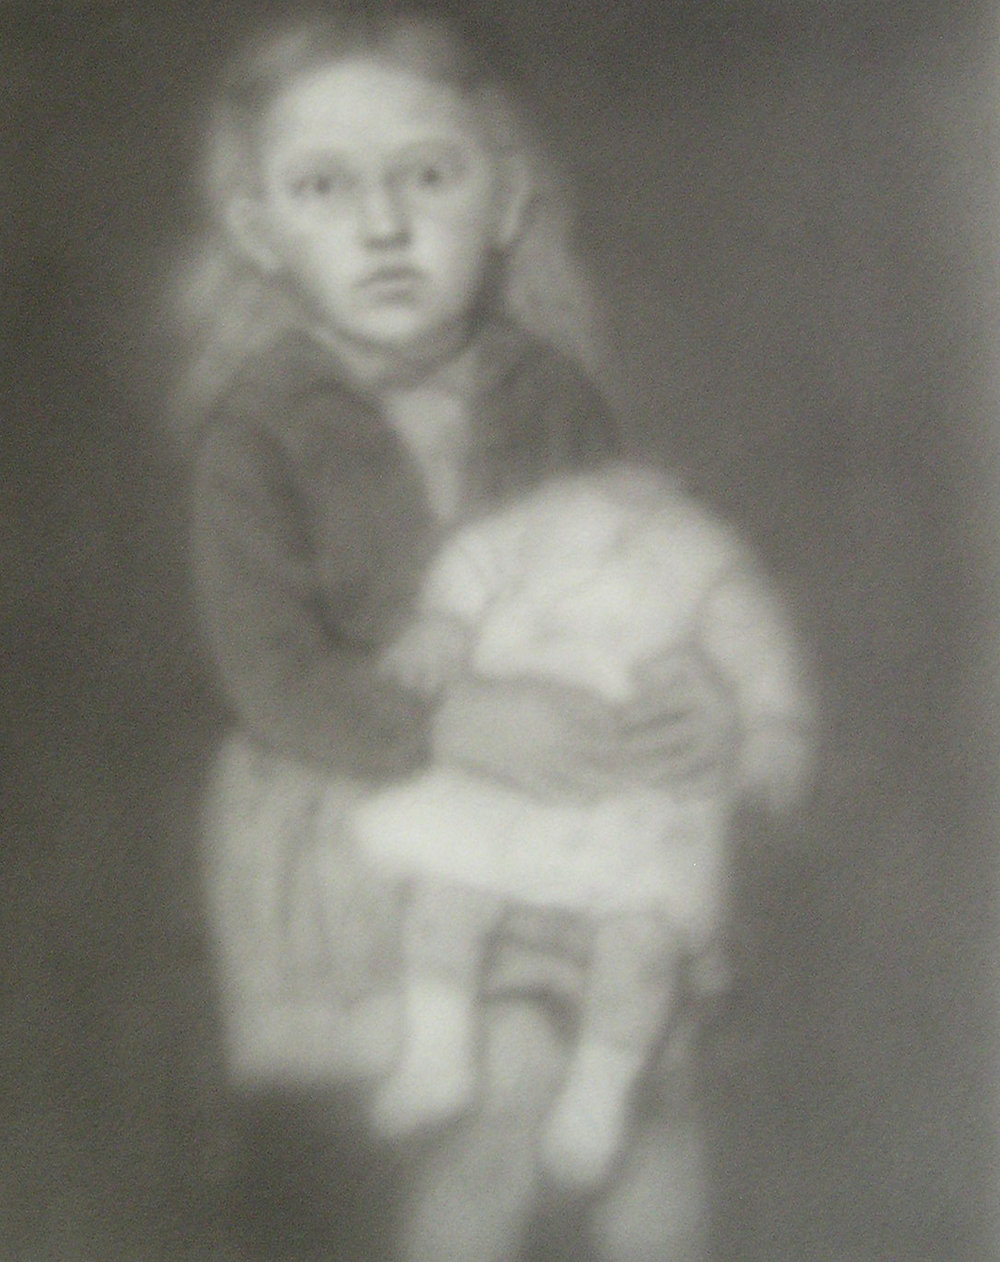 Little Girl Holding Headless Doll